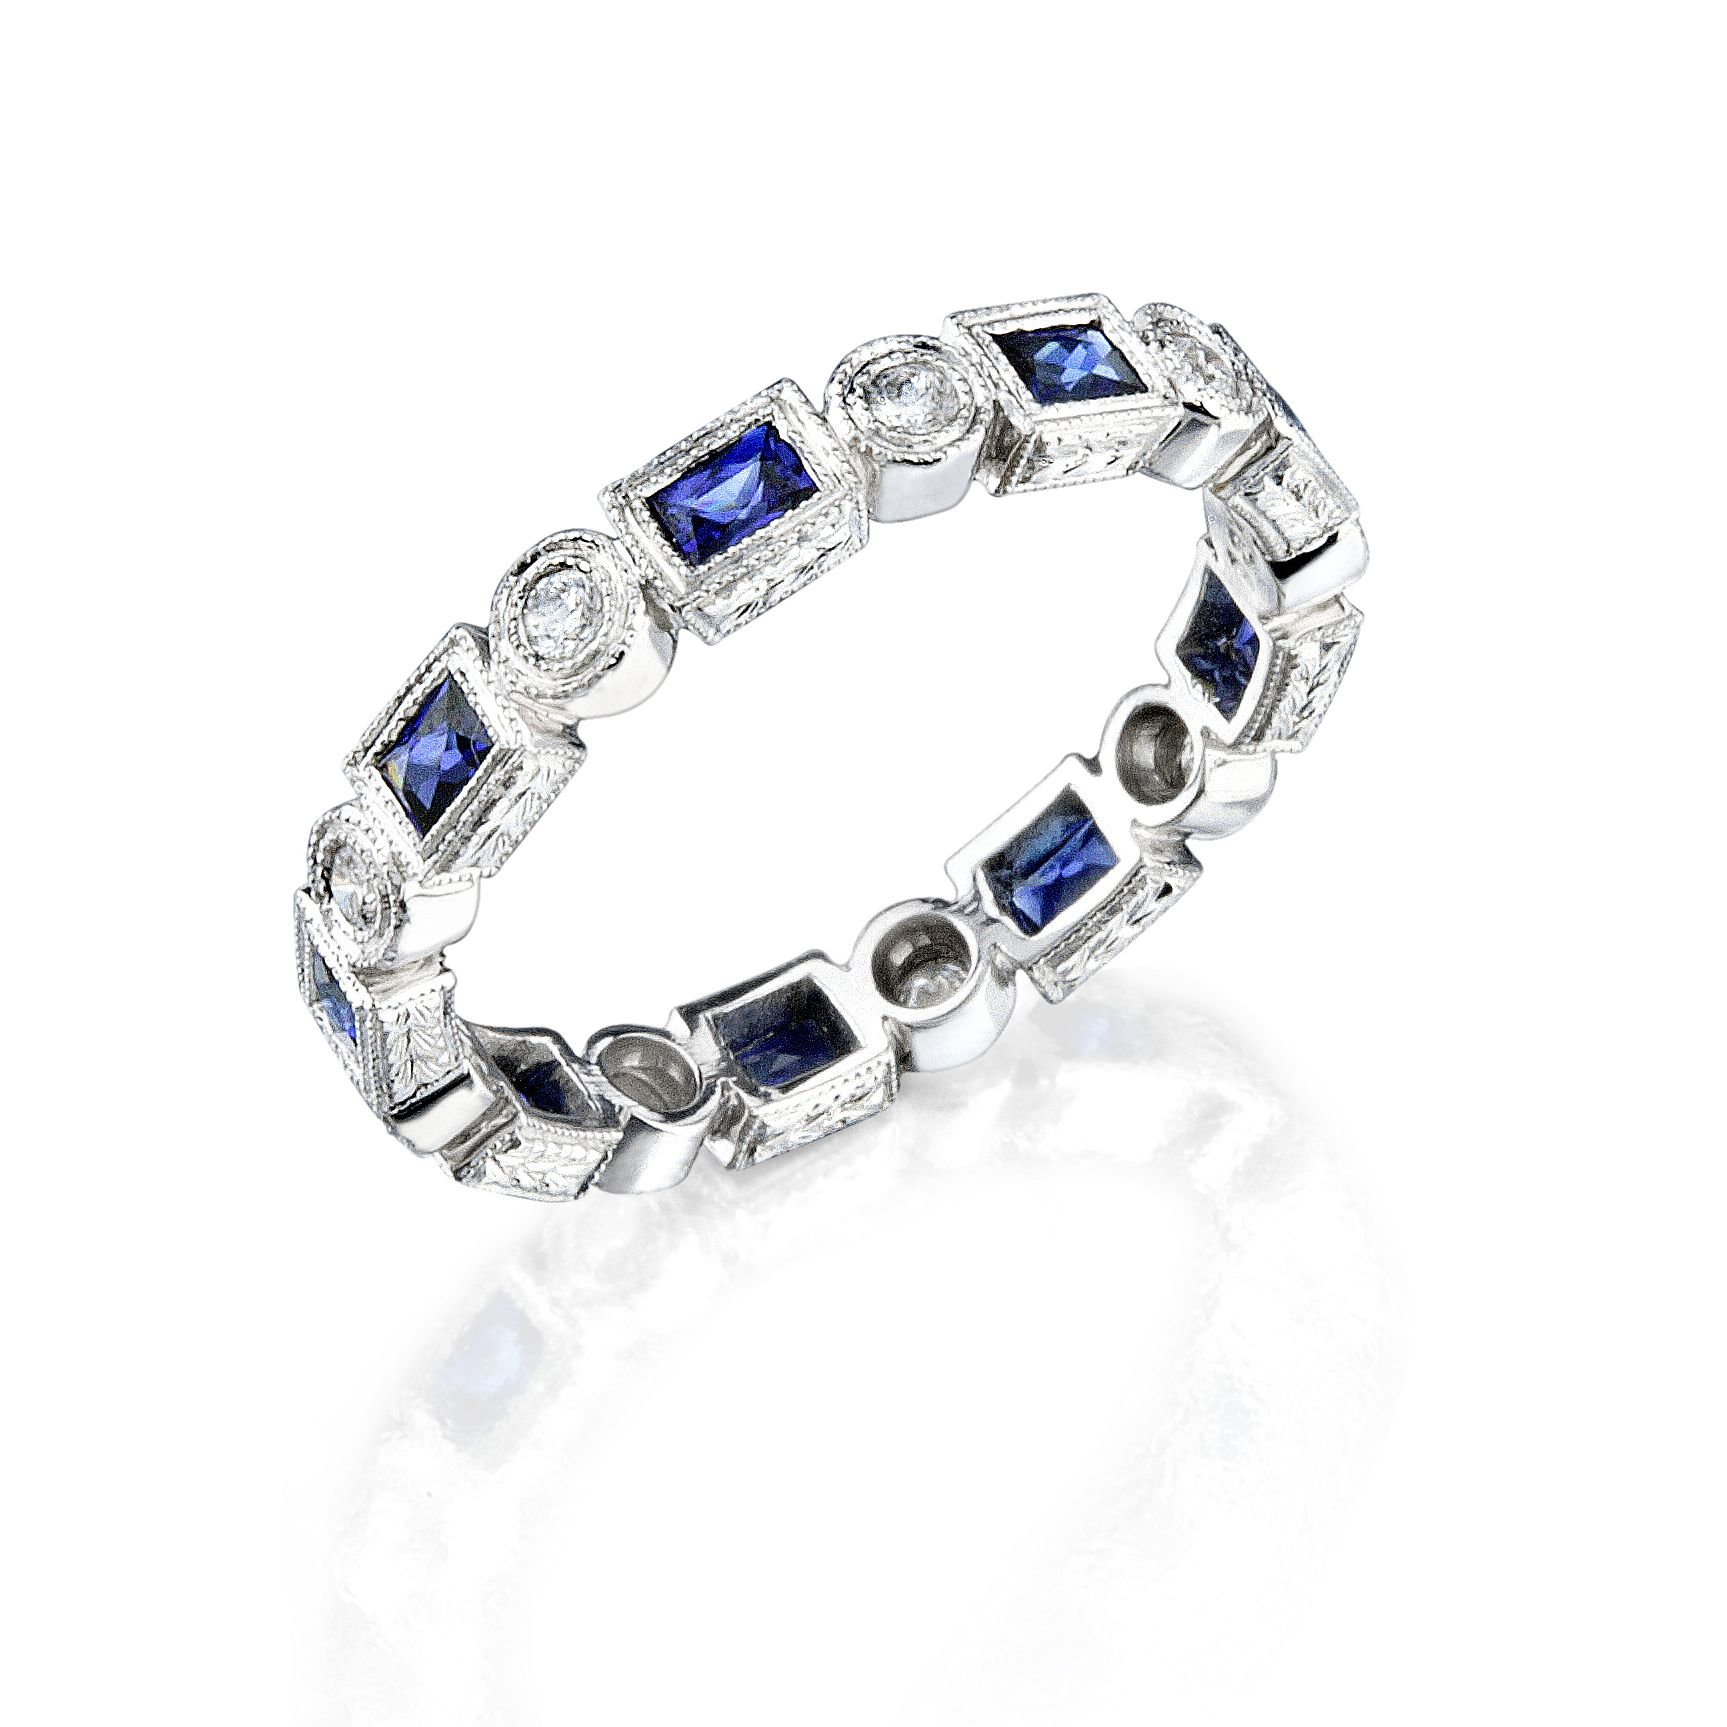 ring best images sapphire rings diamondsusacom pinterest engagements engagement and wedding diamond bands on